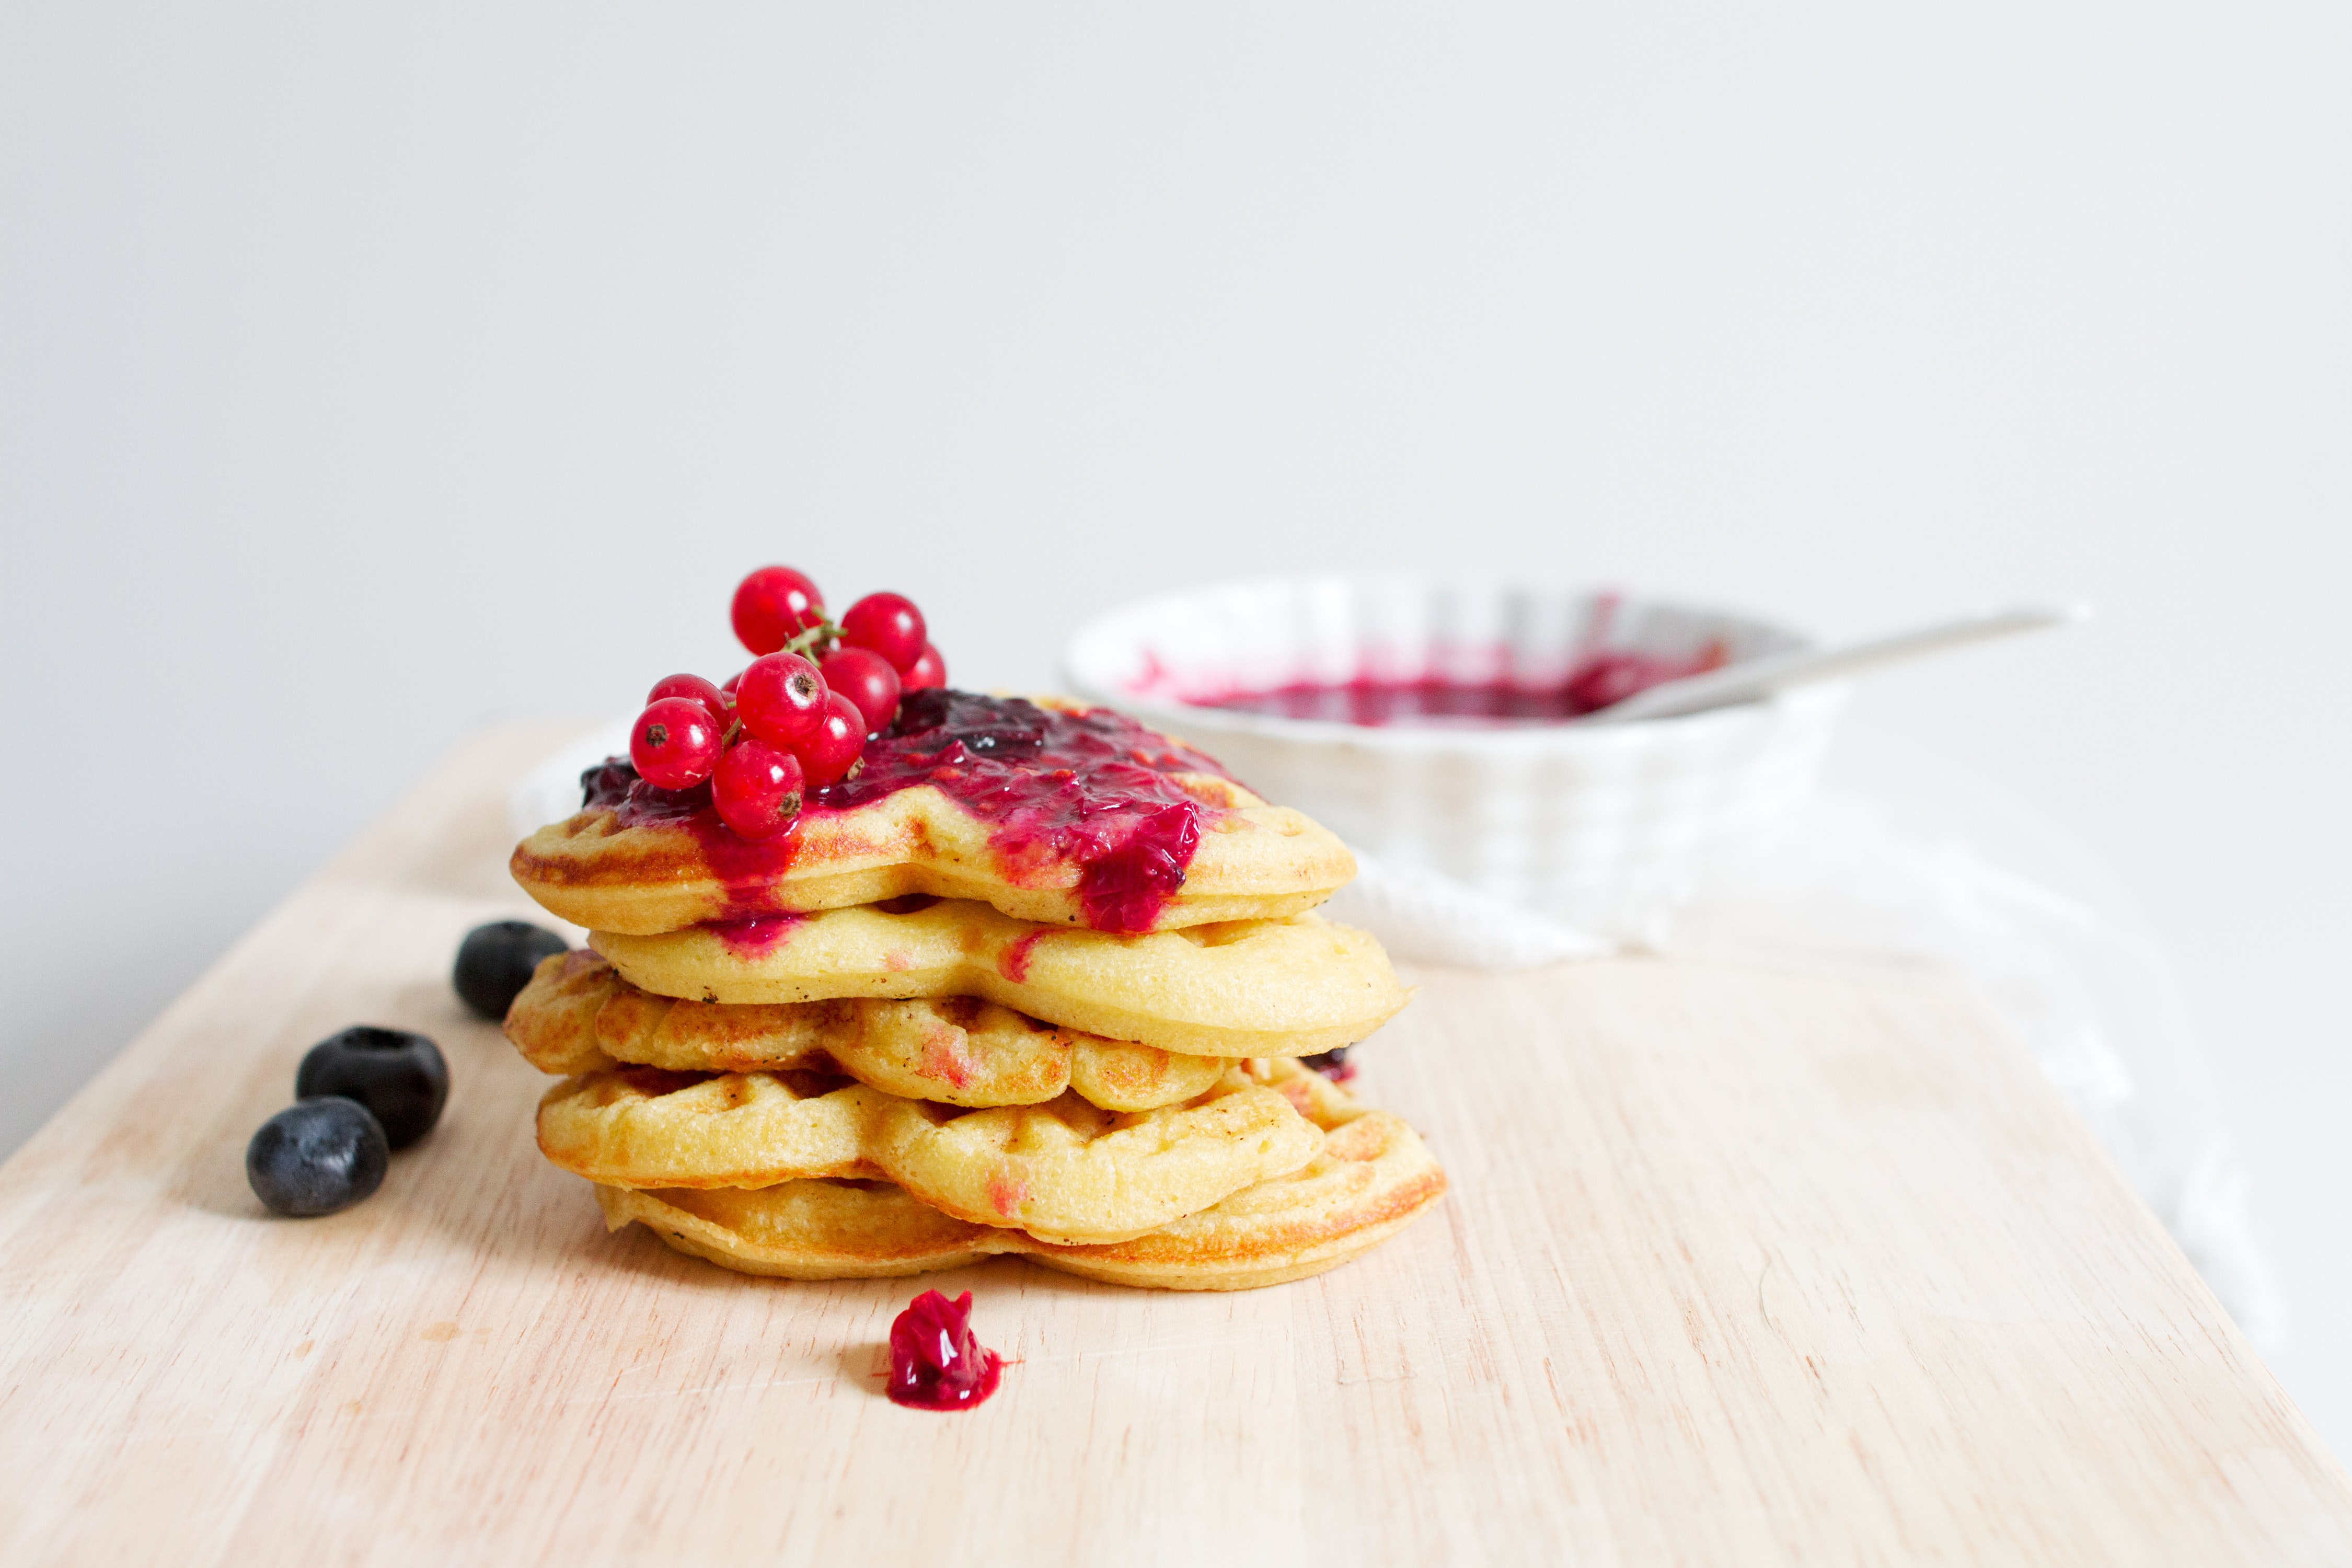 Red currants, blueberries and marmalade on a stack of heart-shaped waffles